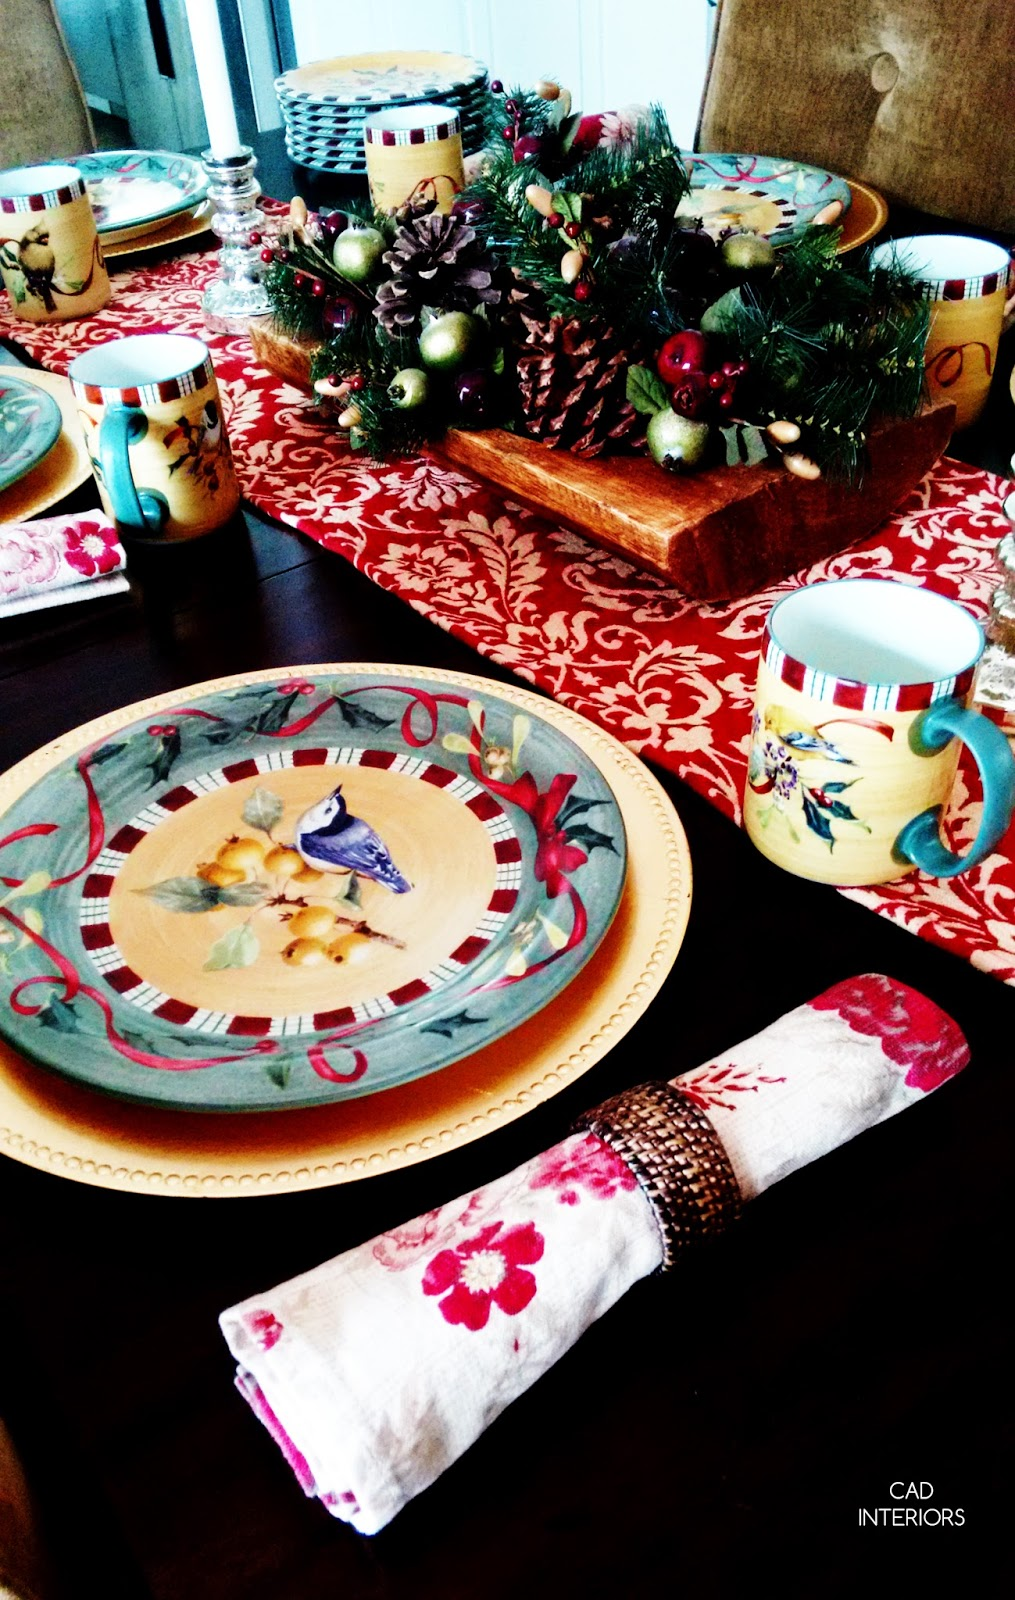 Christmas holiday decorating traditional classic interior decorating gold chargers red green plaid birds country tableware holiday dishes table setting